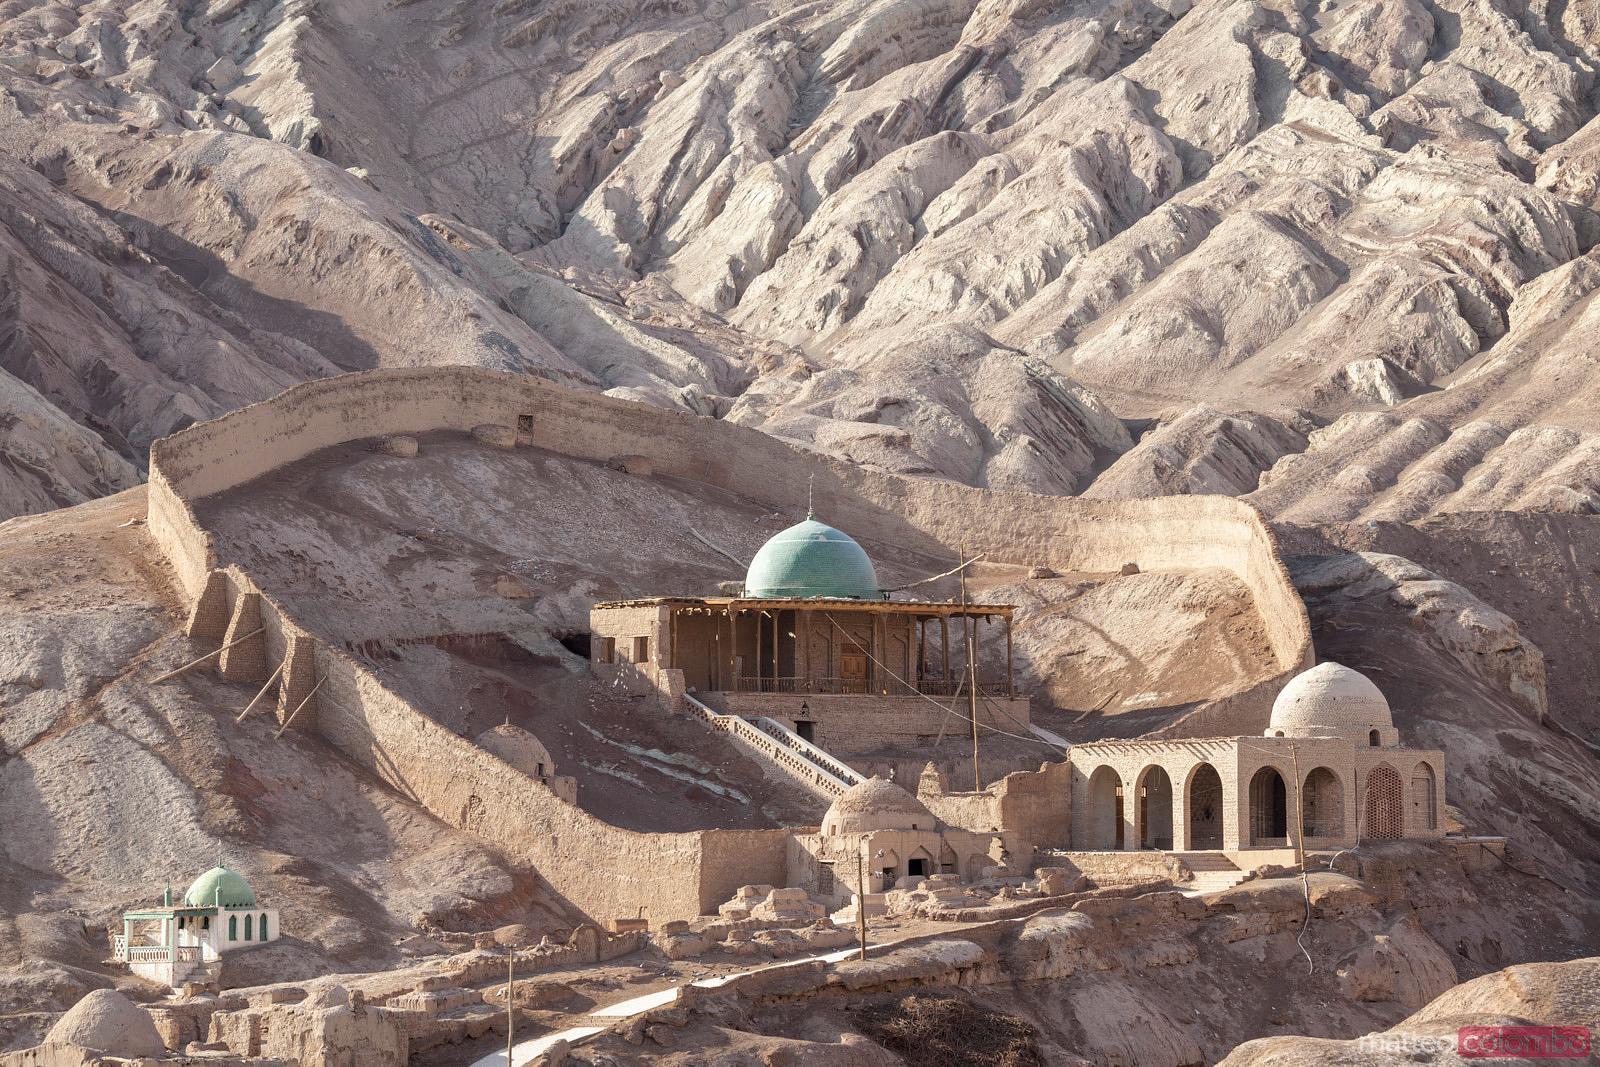 Tombs and ruins in ancient village, Xinjiang, China